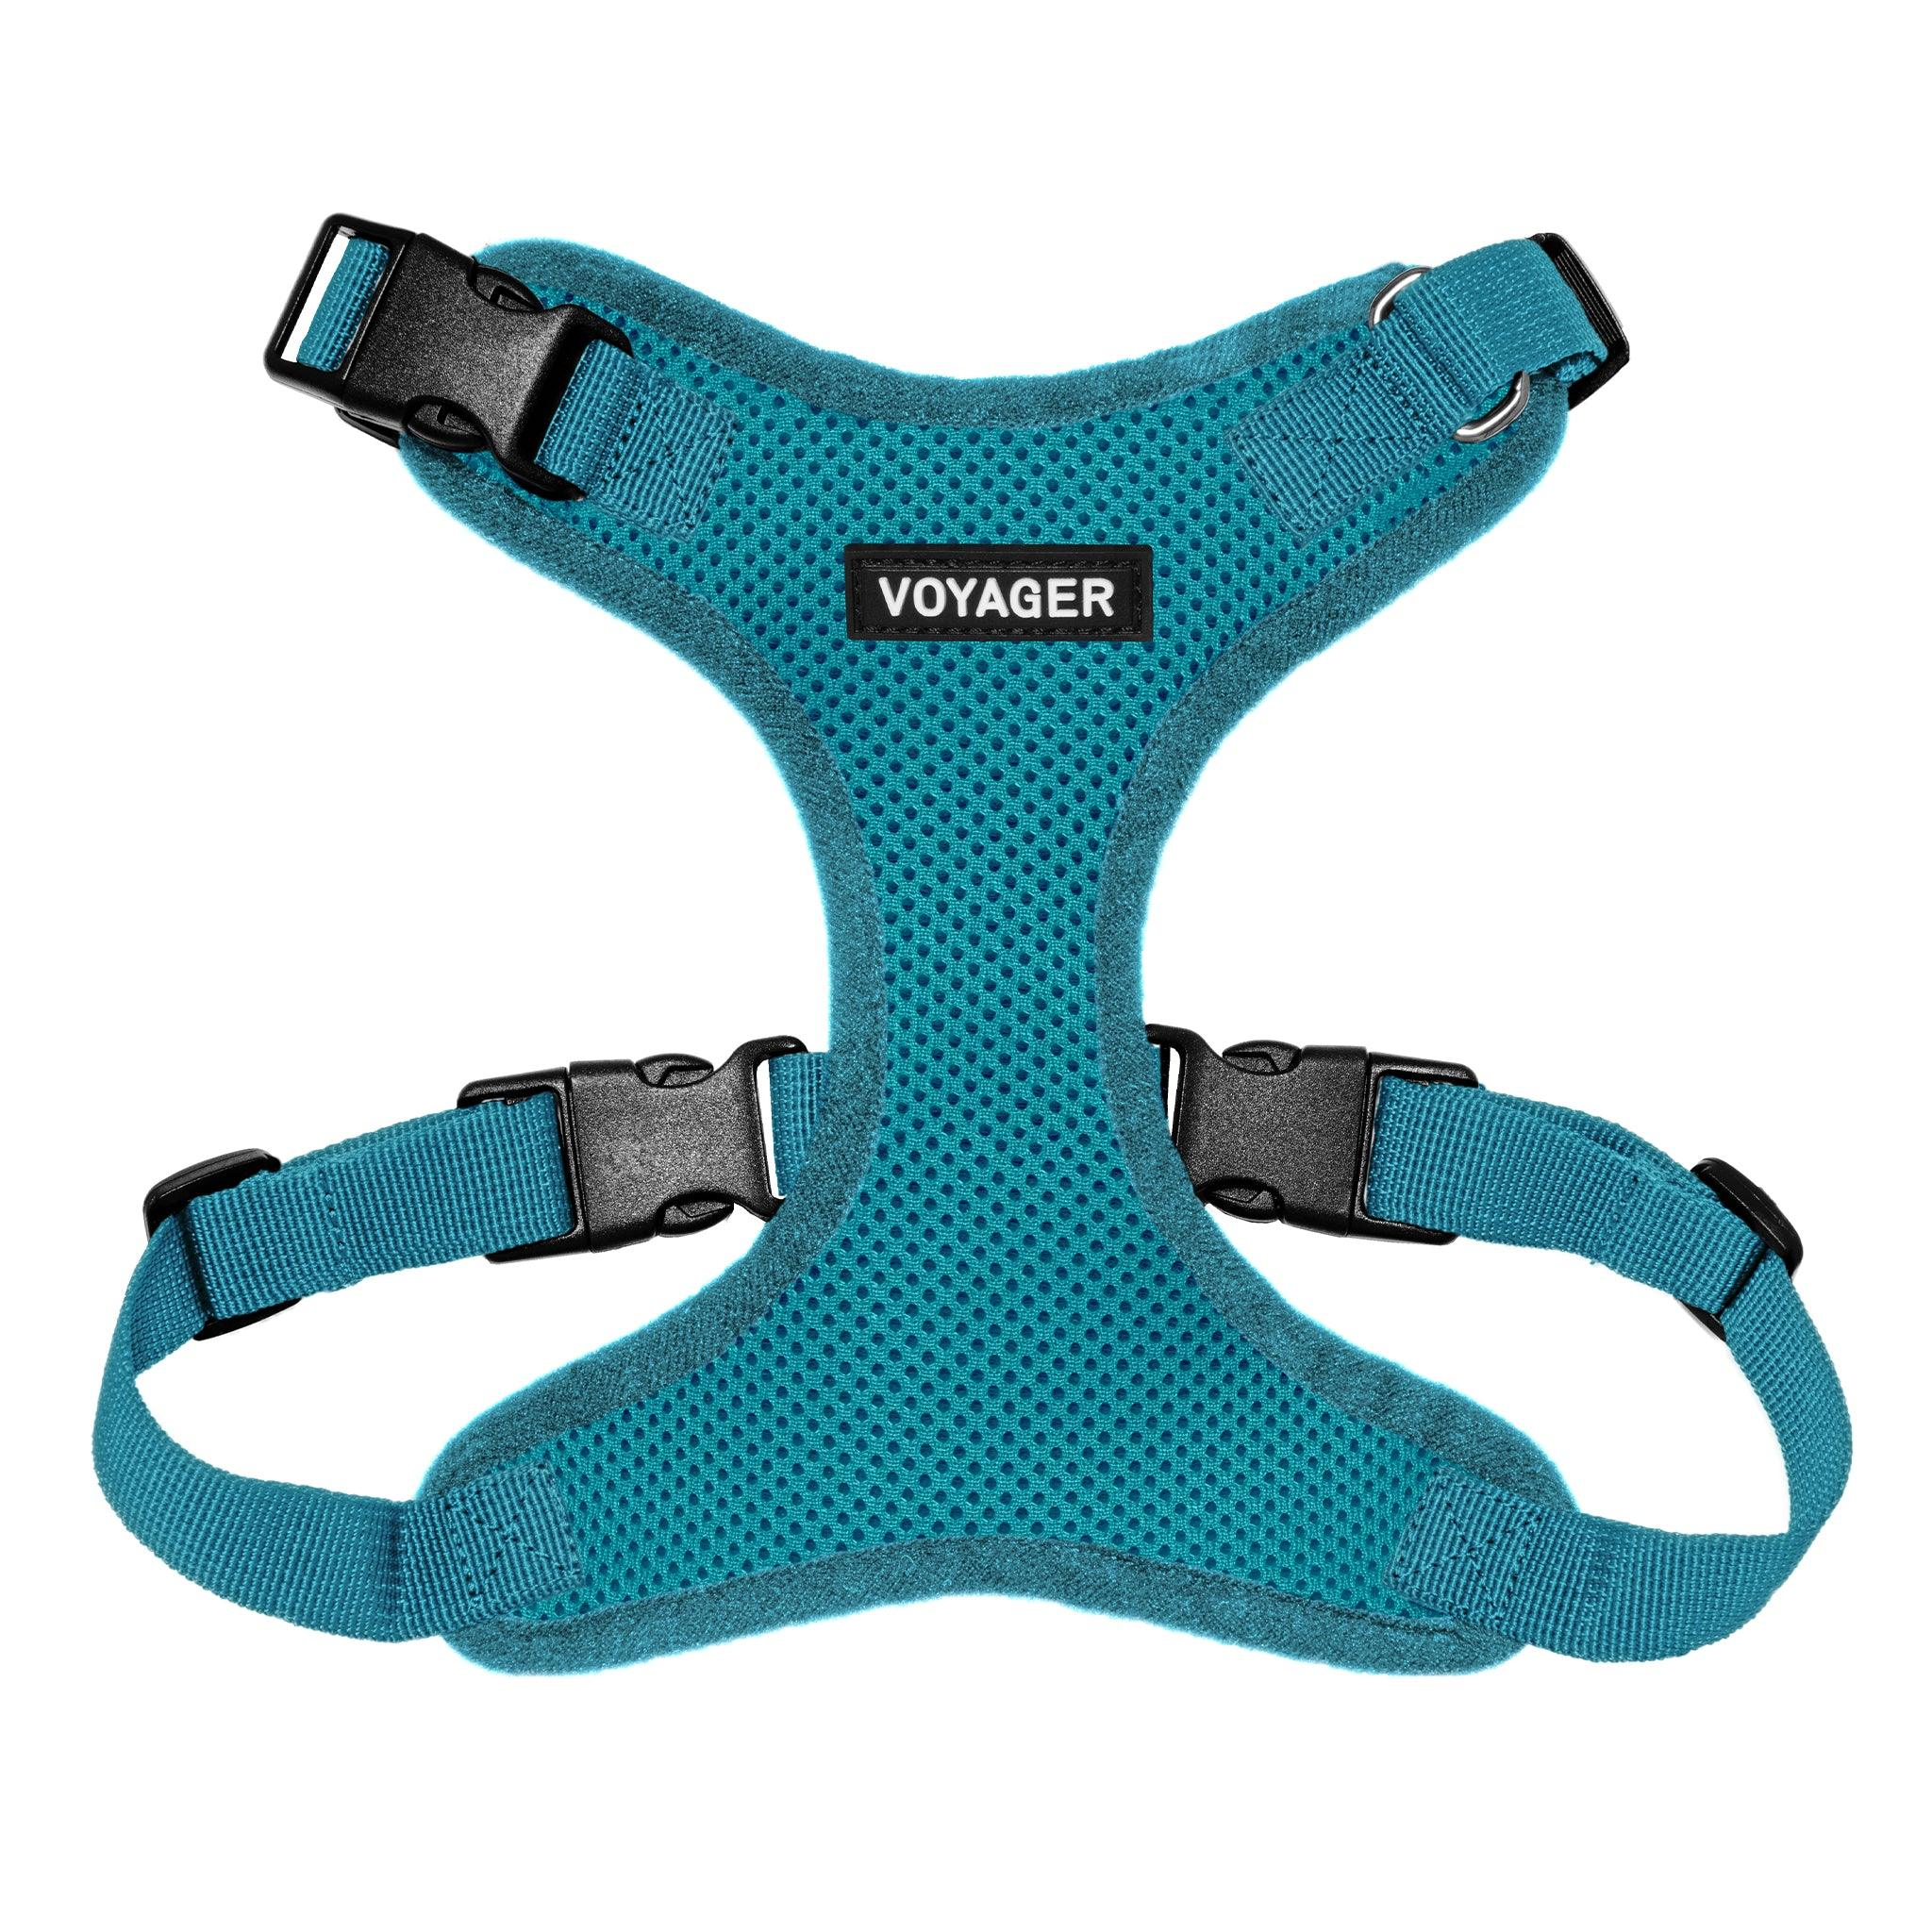 VOYAGER Step-In Lock Dog Harness in Turquoise with Matching Trim and Webbing - Front